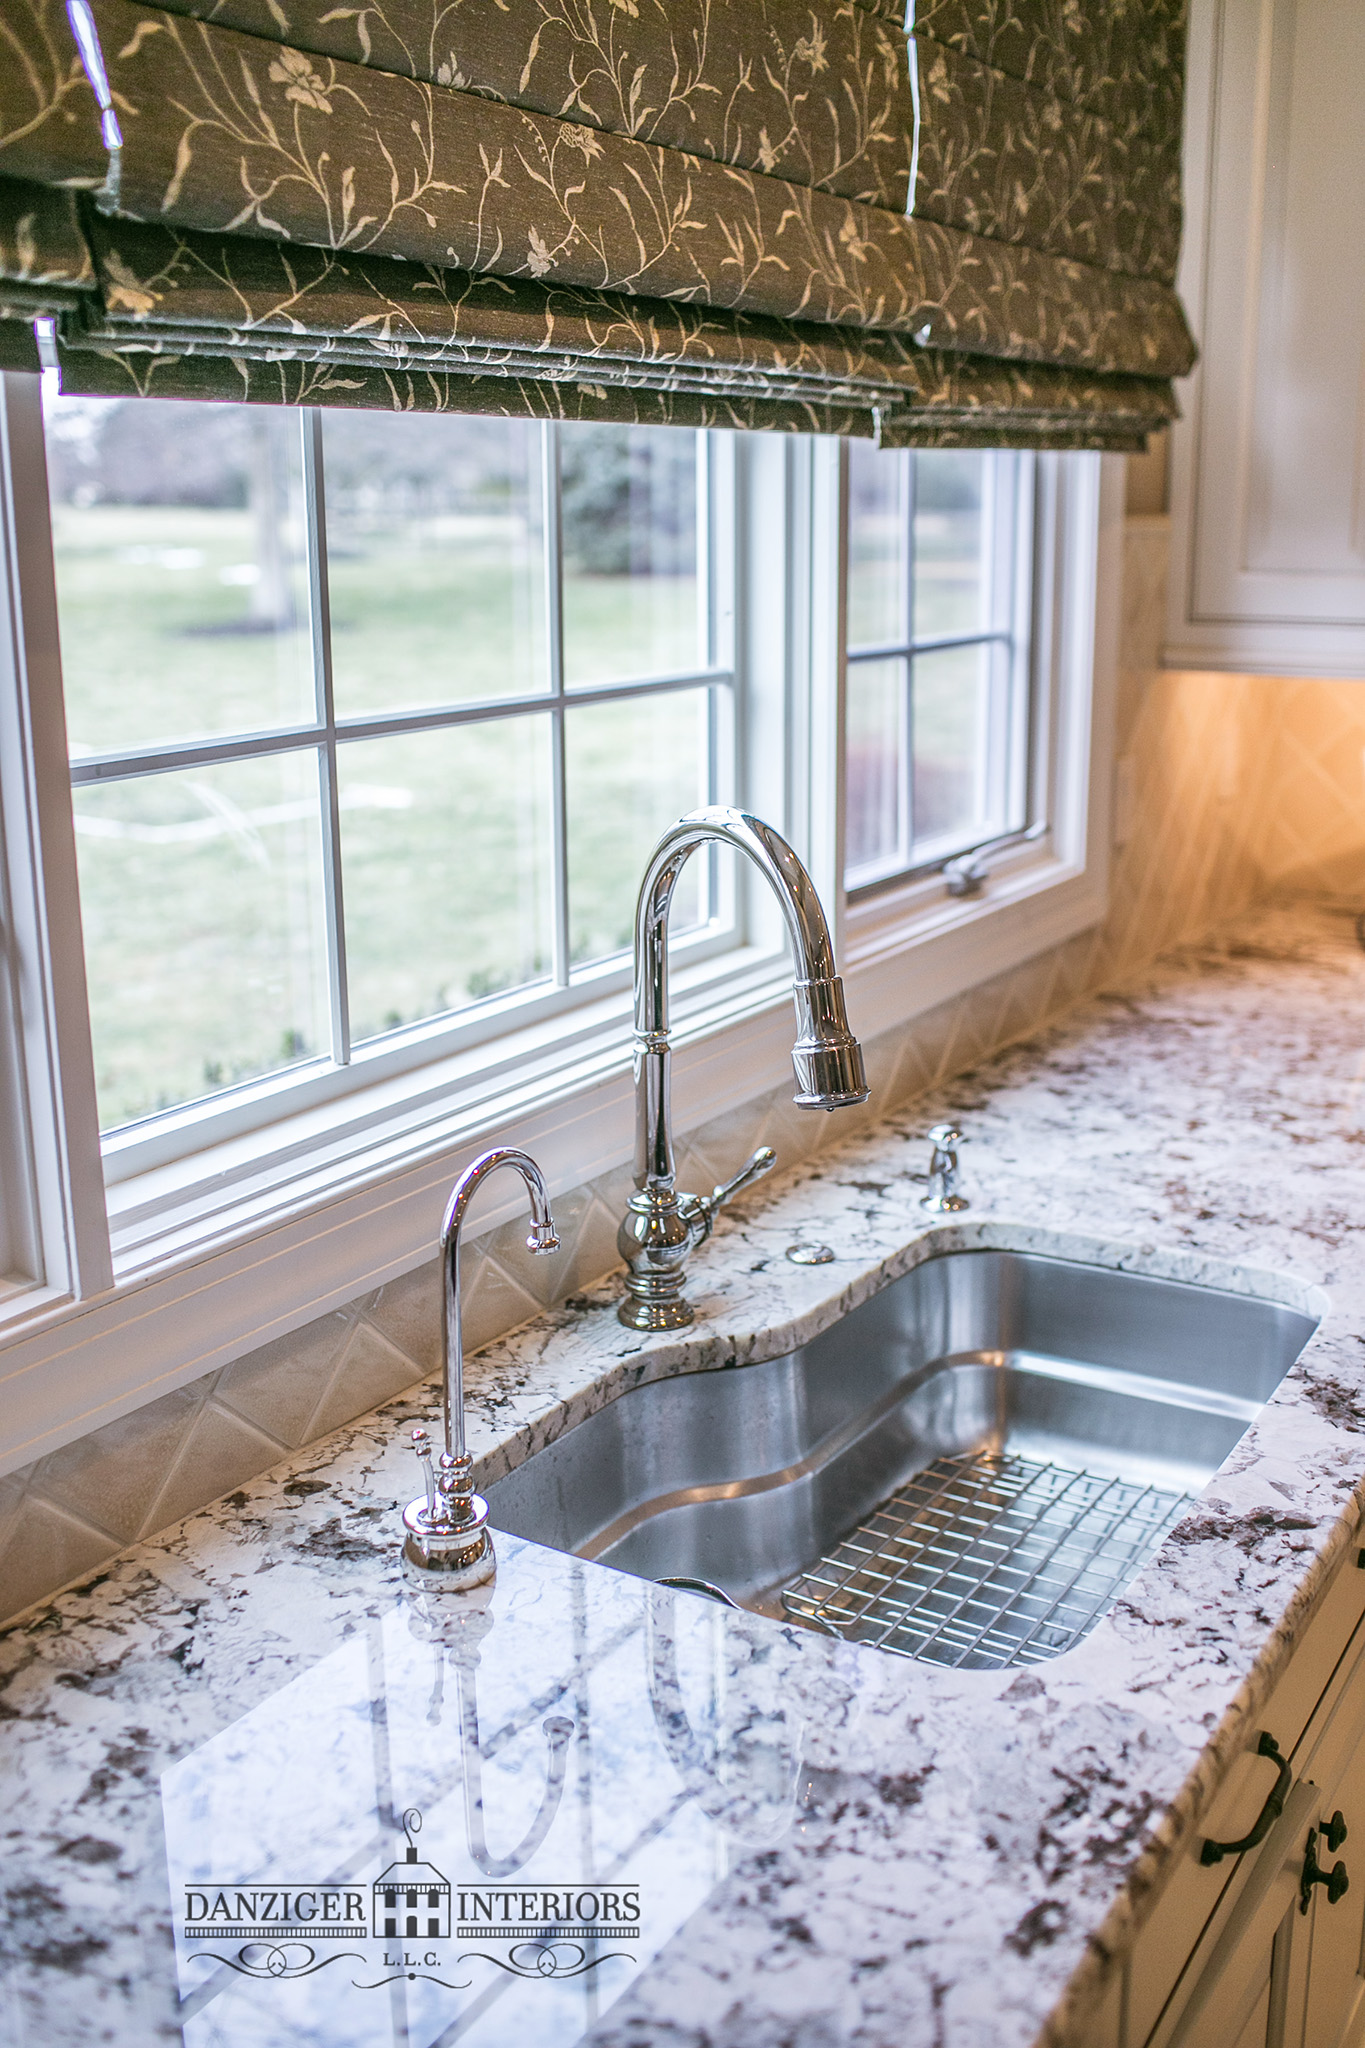 Stainless steel sink with hot water tap